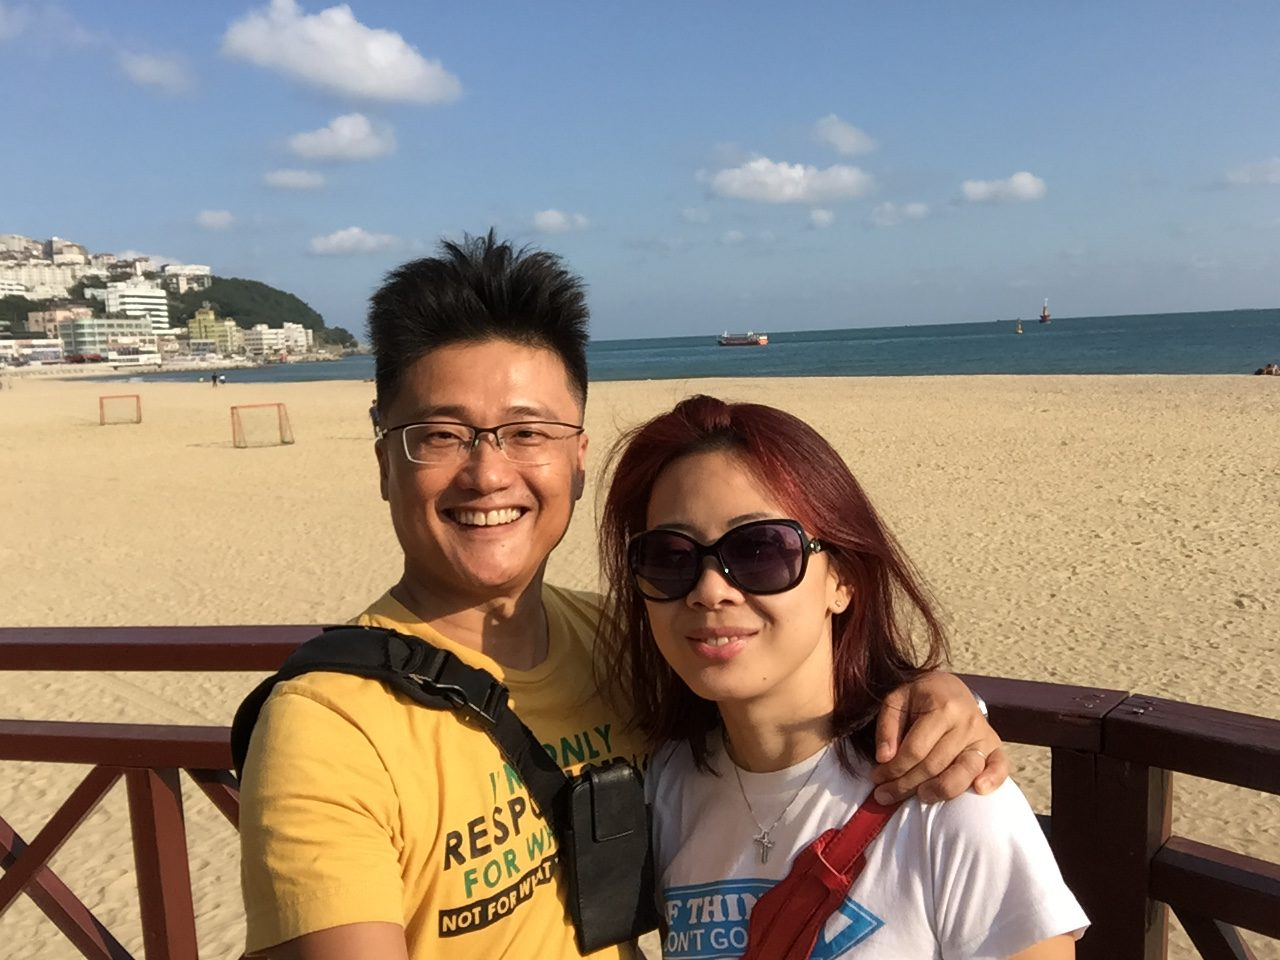 a selfie of me and my wife Brenda on haeundae beach